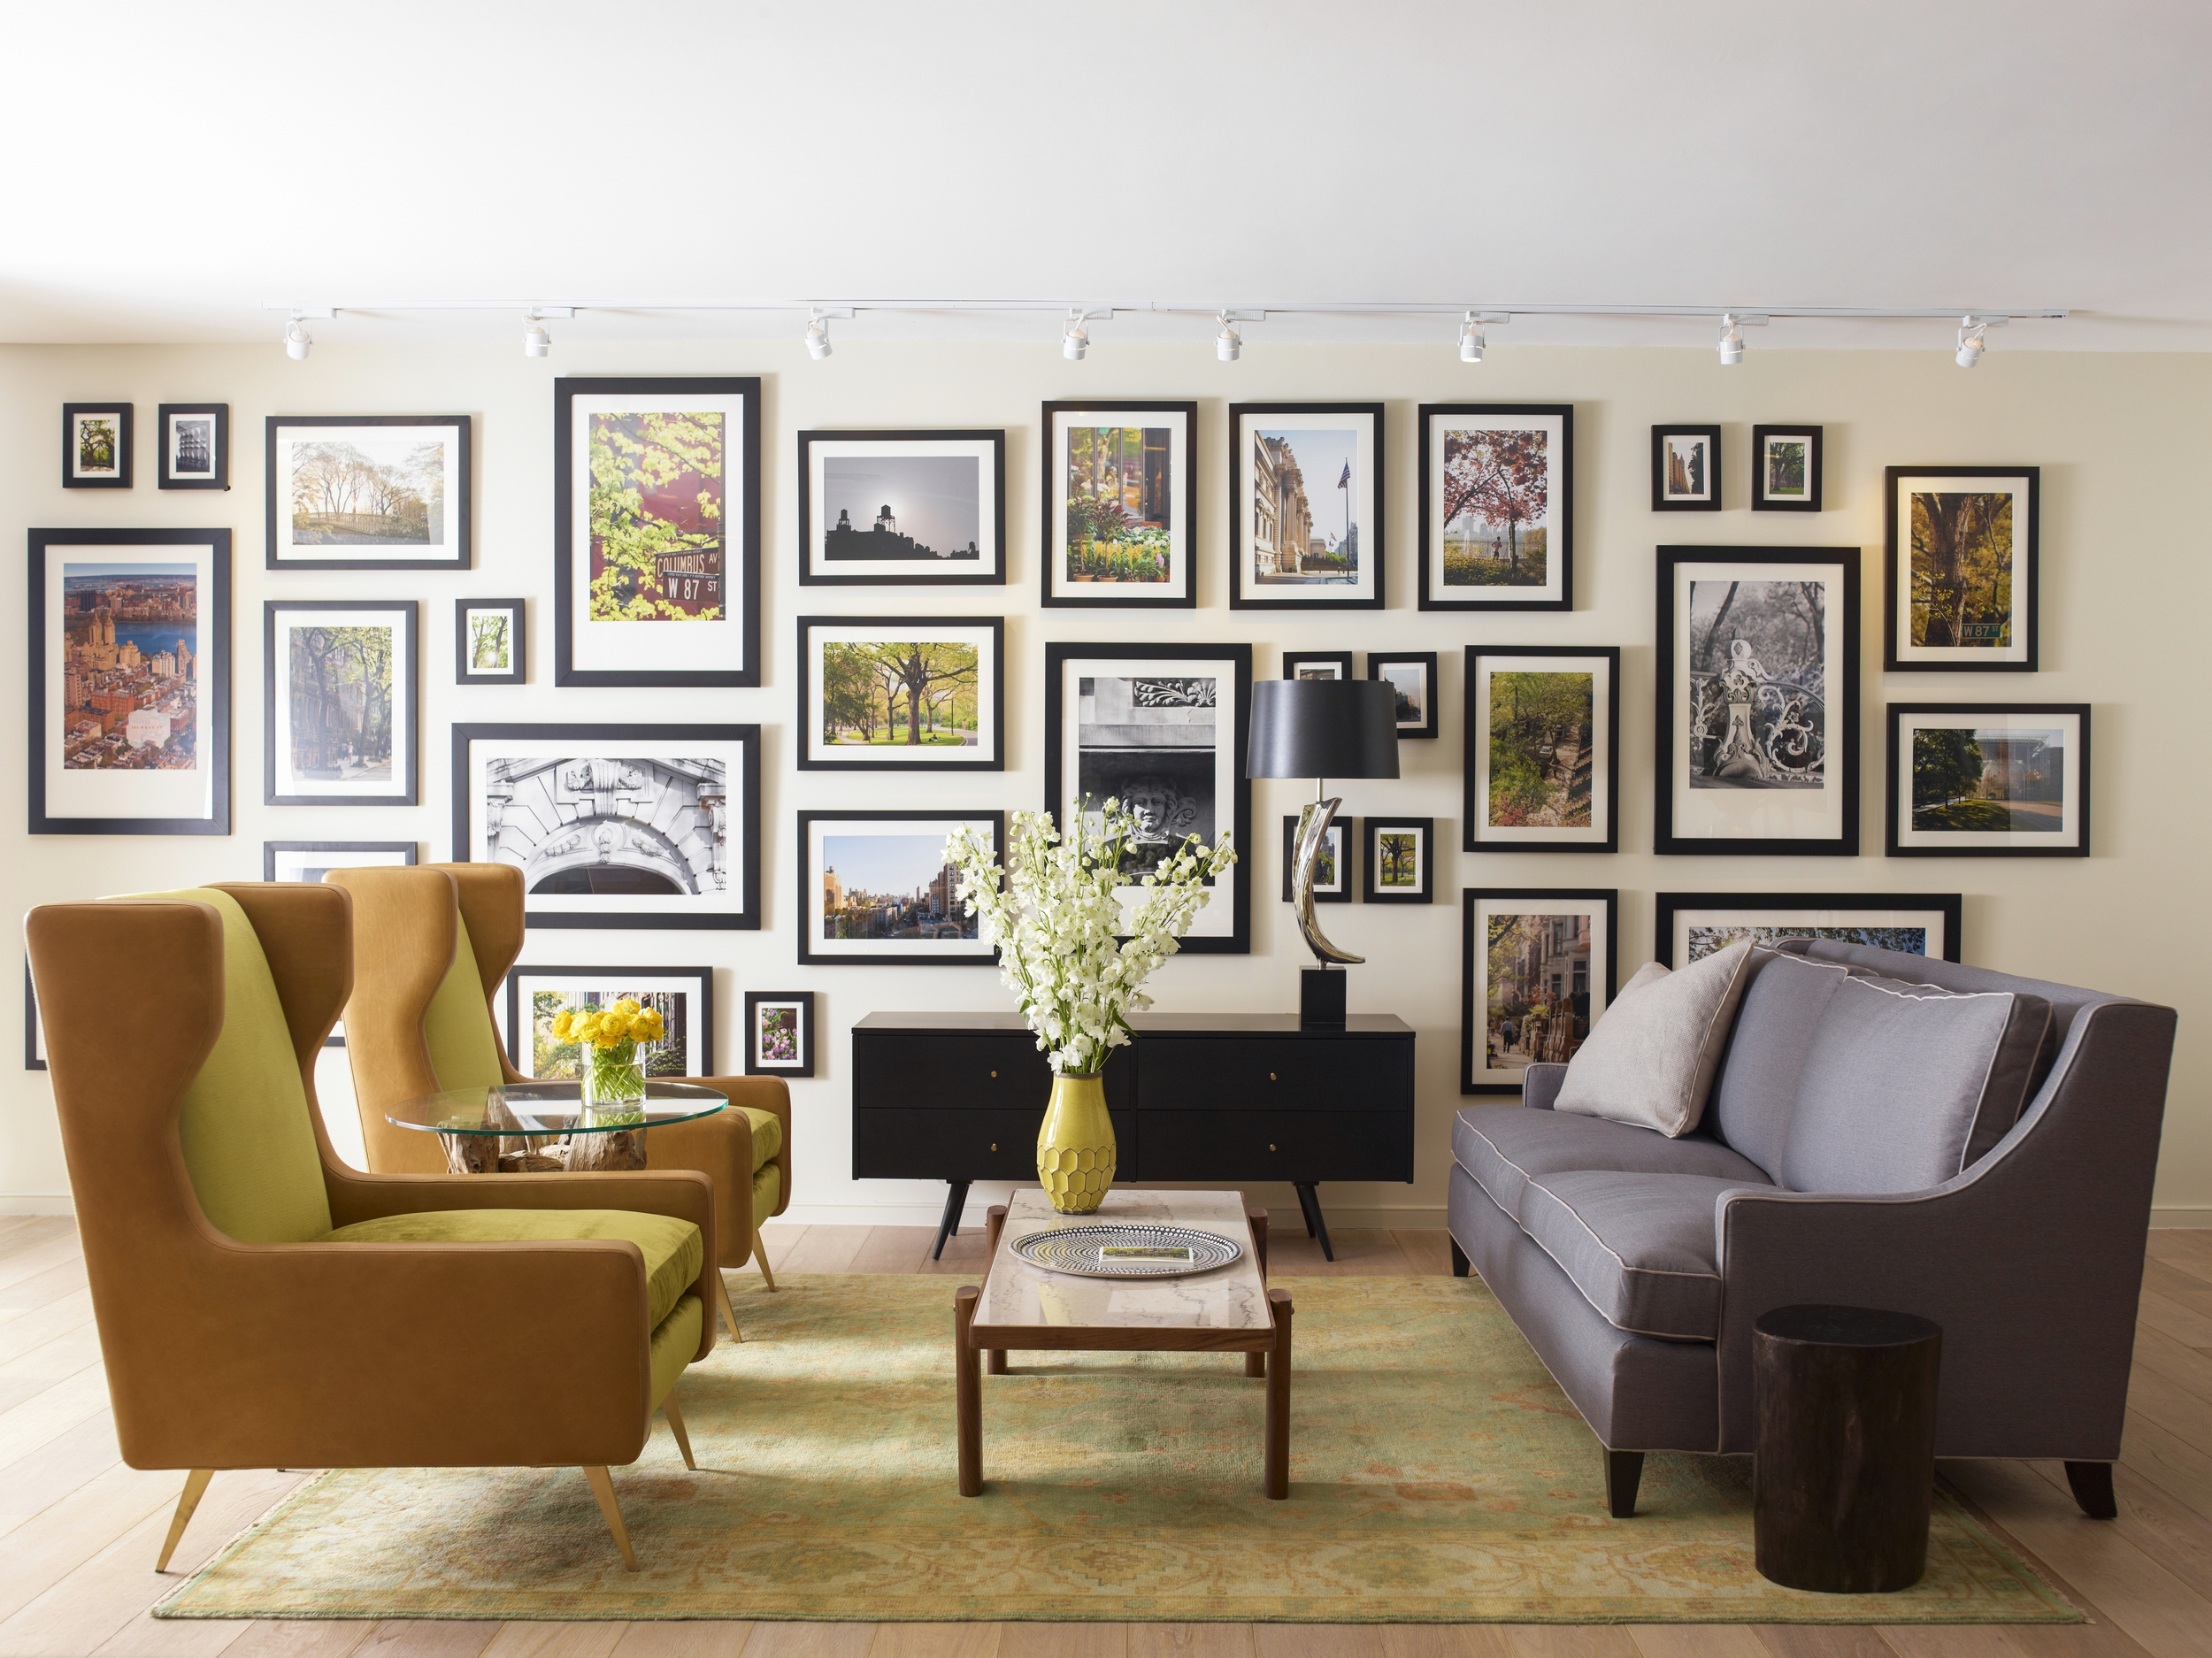 101 W 87th Street Living Room with Gallery Wall